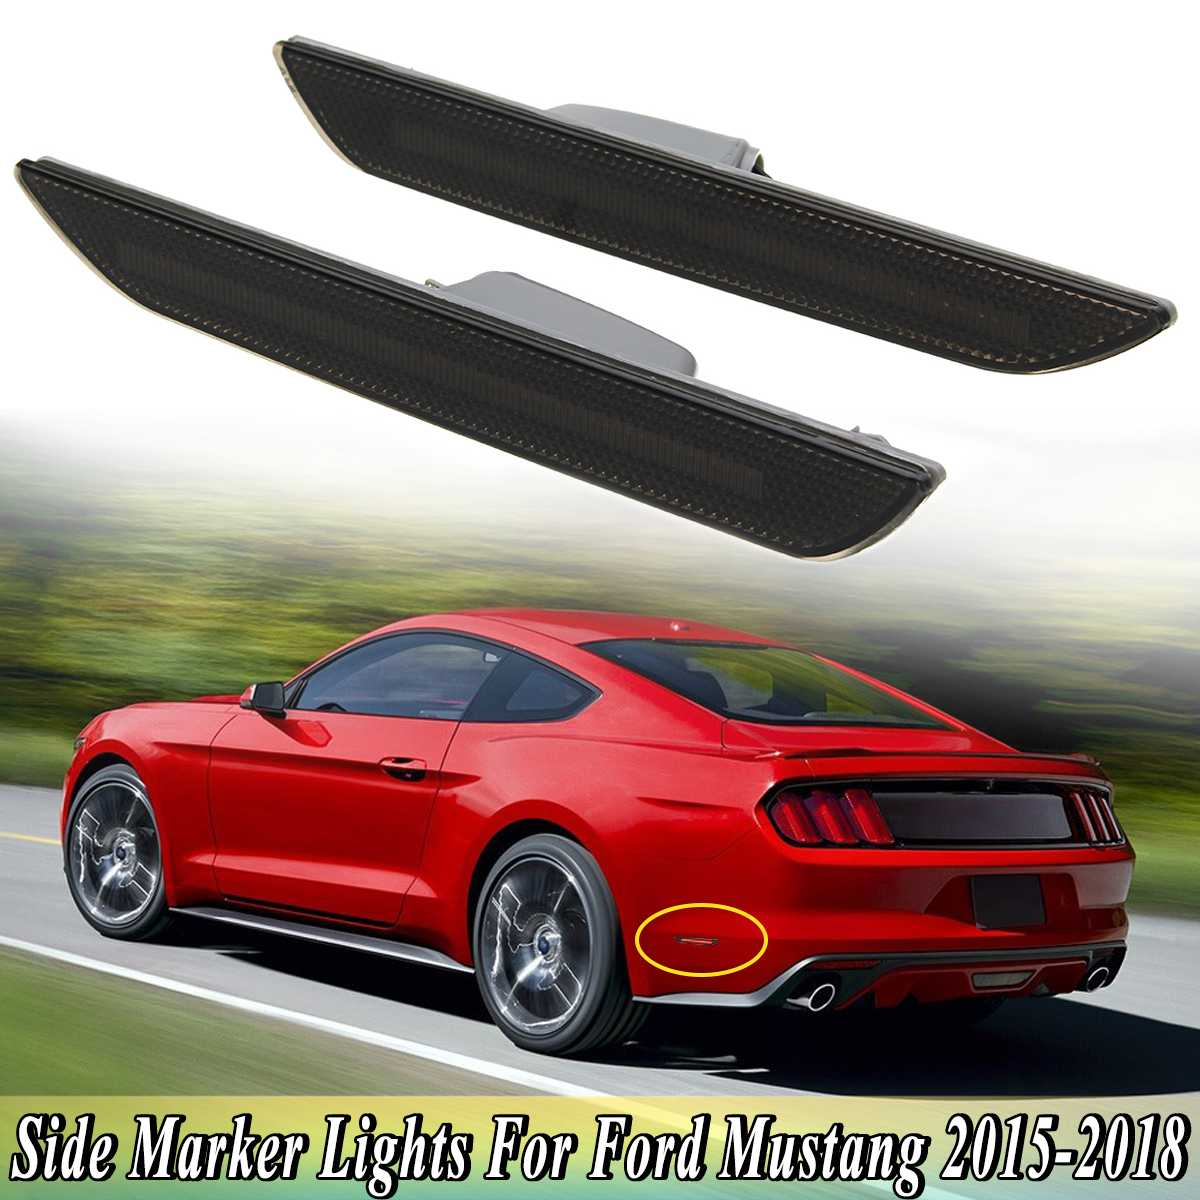 1Pair Smoked Black Lens Red <font><b>LED</b></font> Rear Side Marker Lights Lamps Fit For Ford For <font><b>Mustang</b></font> <font><b>2015</b></font> 2016 2017 2018 Bumper Back Lamp image